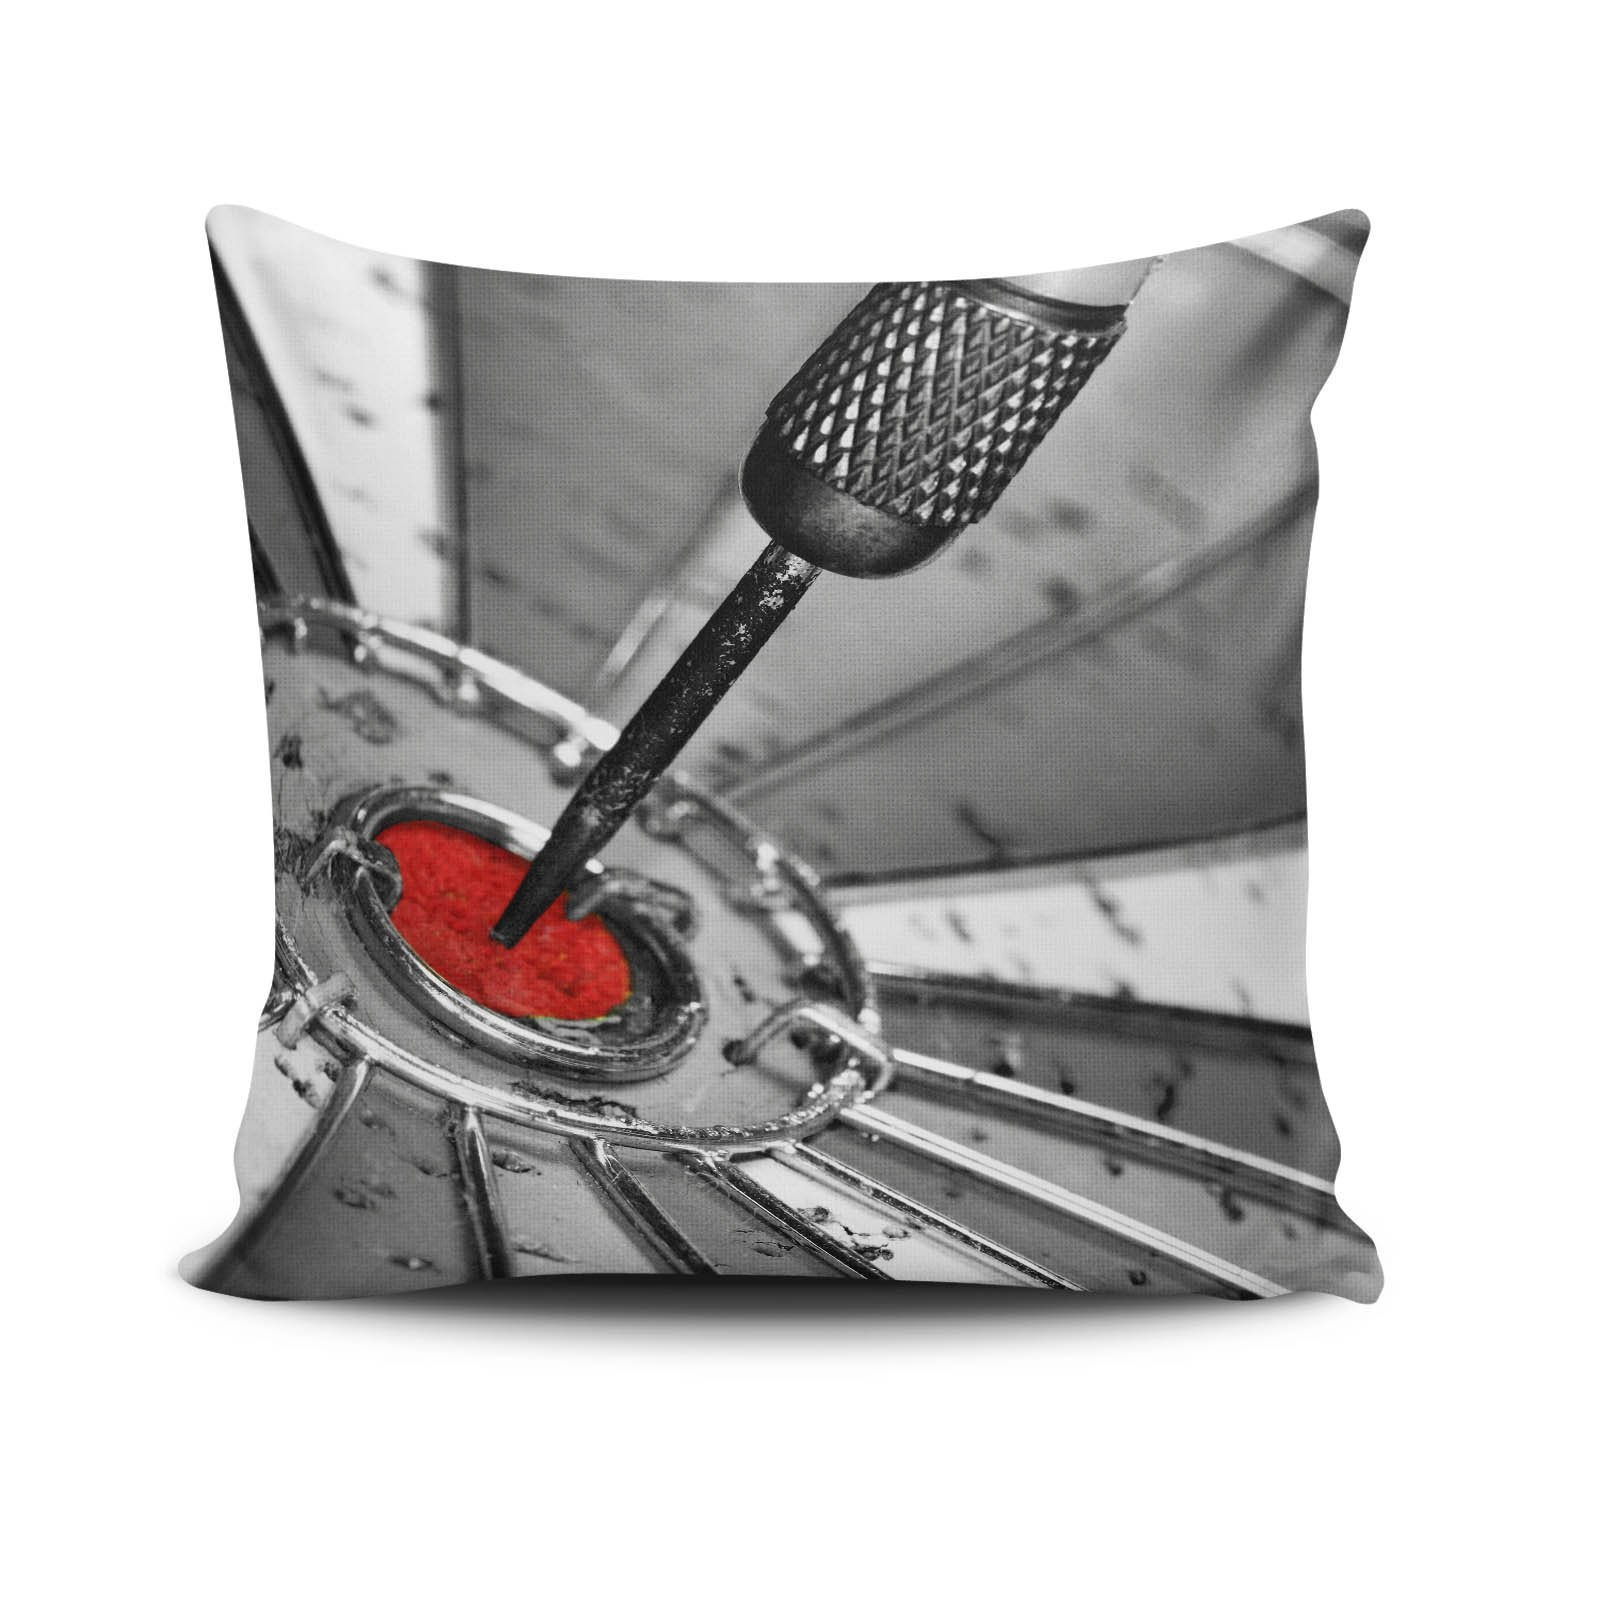 Premium Decorative Cushion Throw Pillow Hypoallergenic Stuffer Silicone Filling (17.5'' x 17.5'') | Dart Arrow Incidence Score Target Bingo On The Nose Home 50% Cotton 50% Polyester Full with Silicone F by LaModaHome